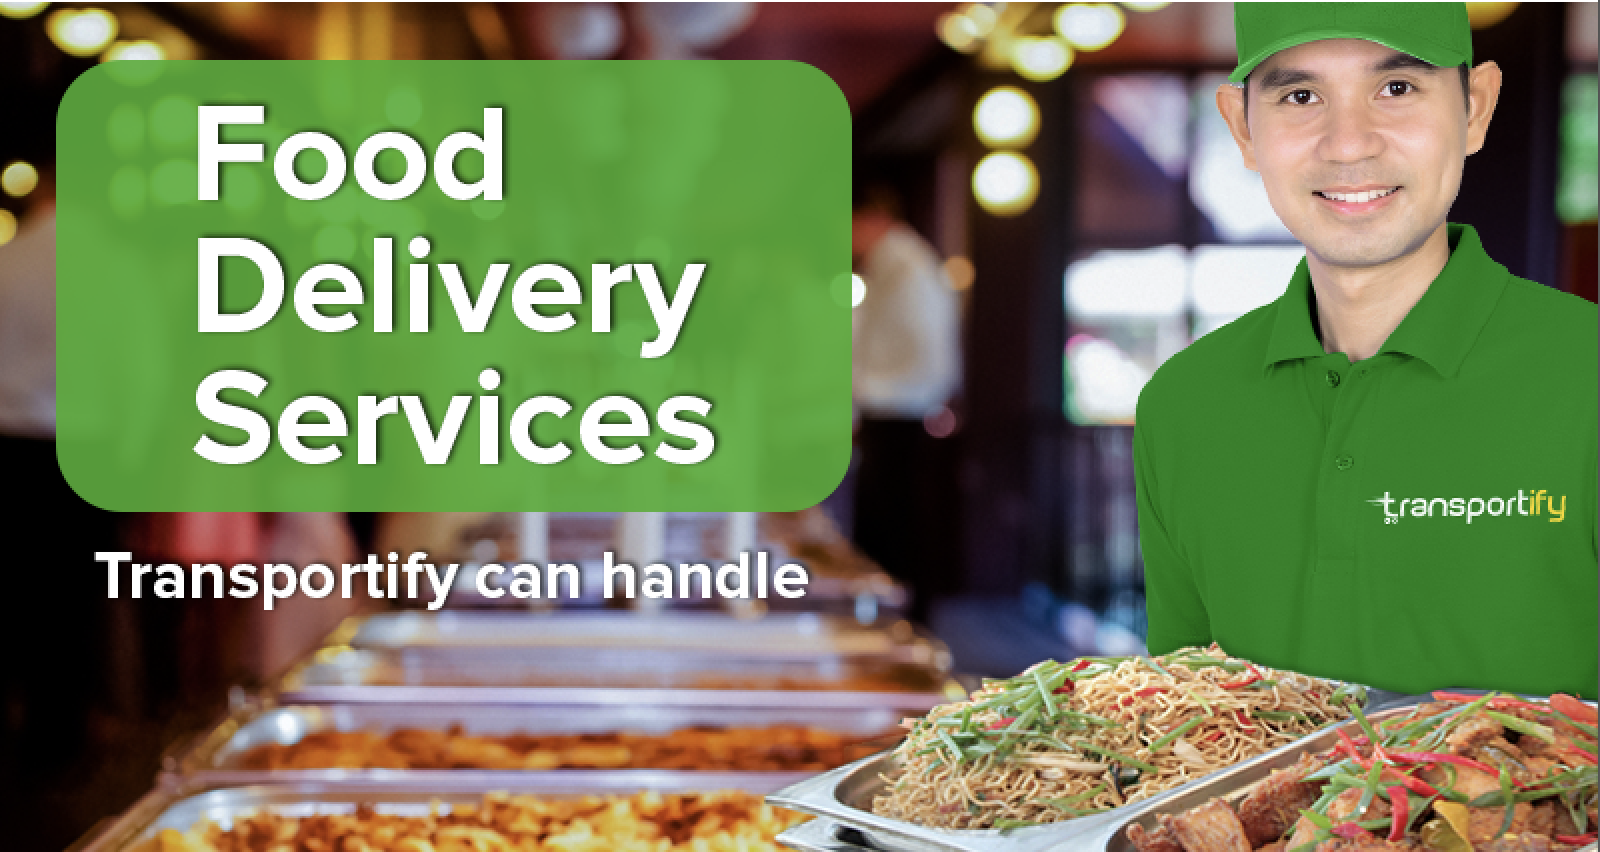 transportify, on-demand app, driver partner, food delivery service, fast delivery,